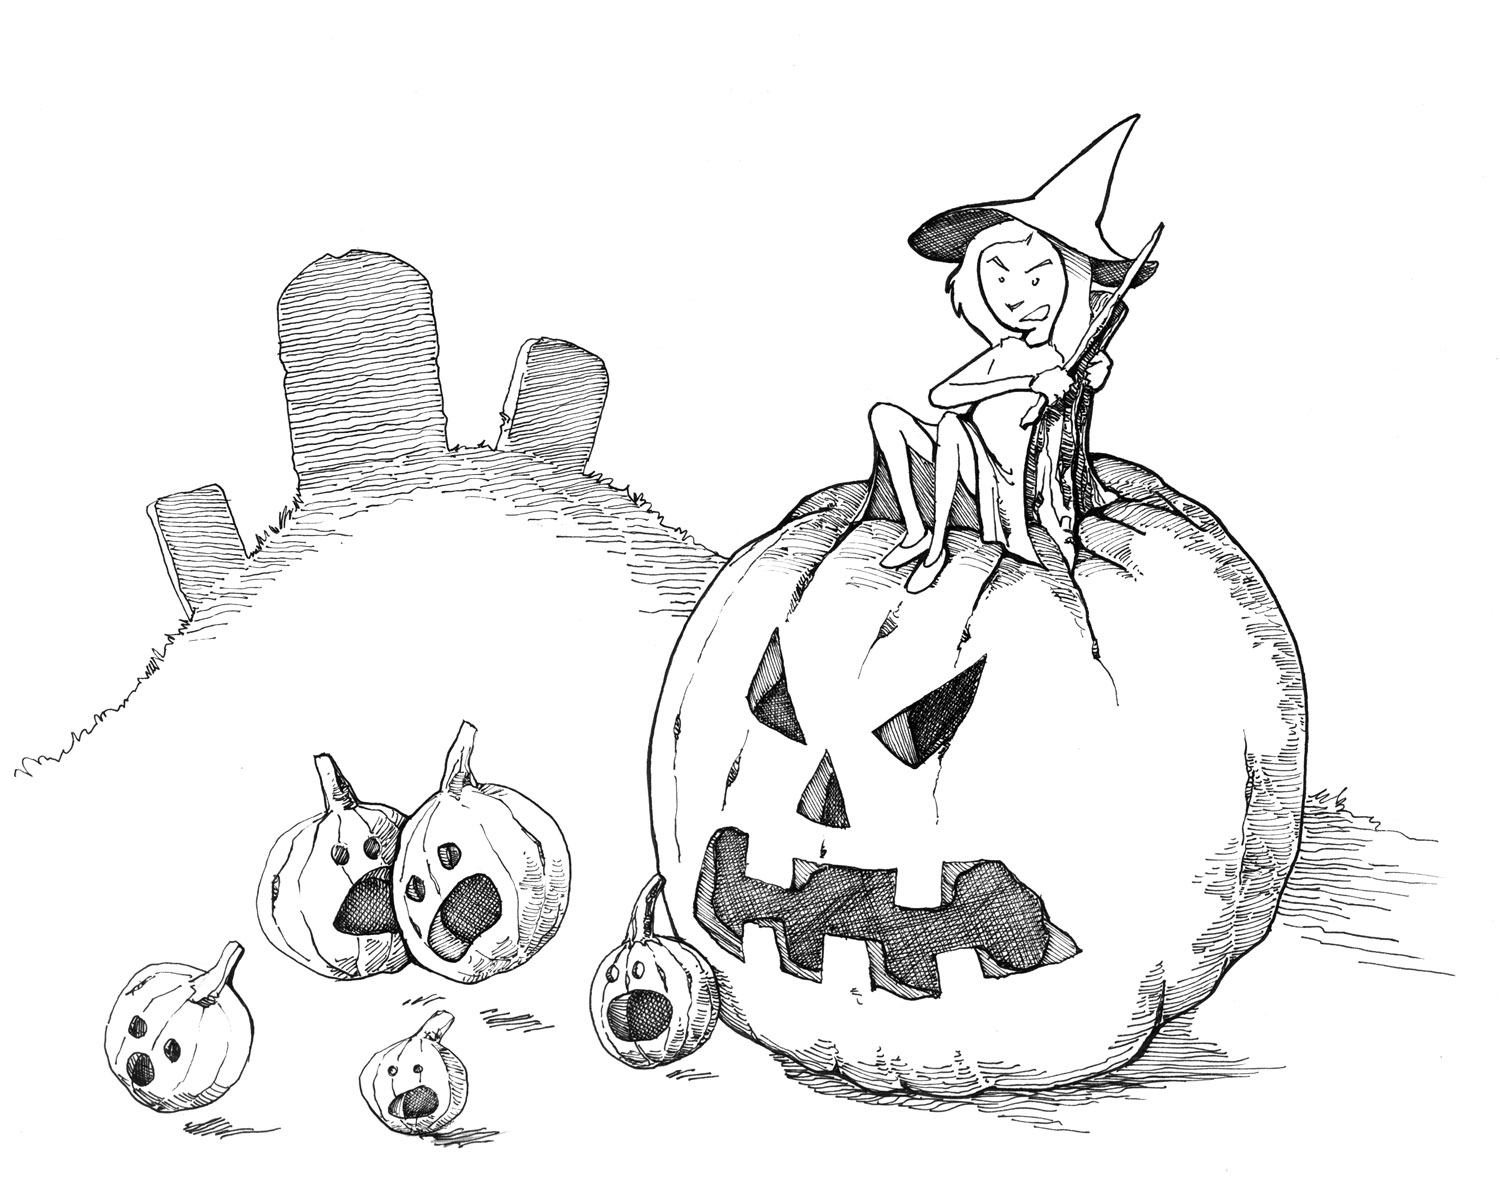 fright_stephen_ingram